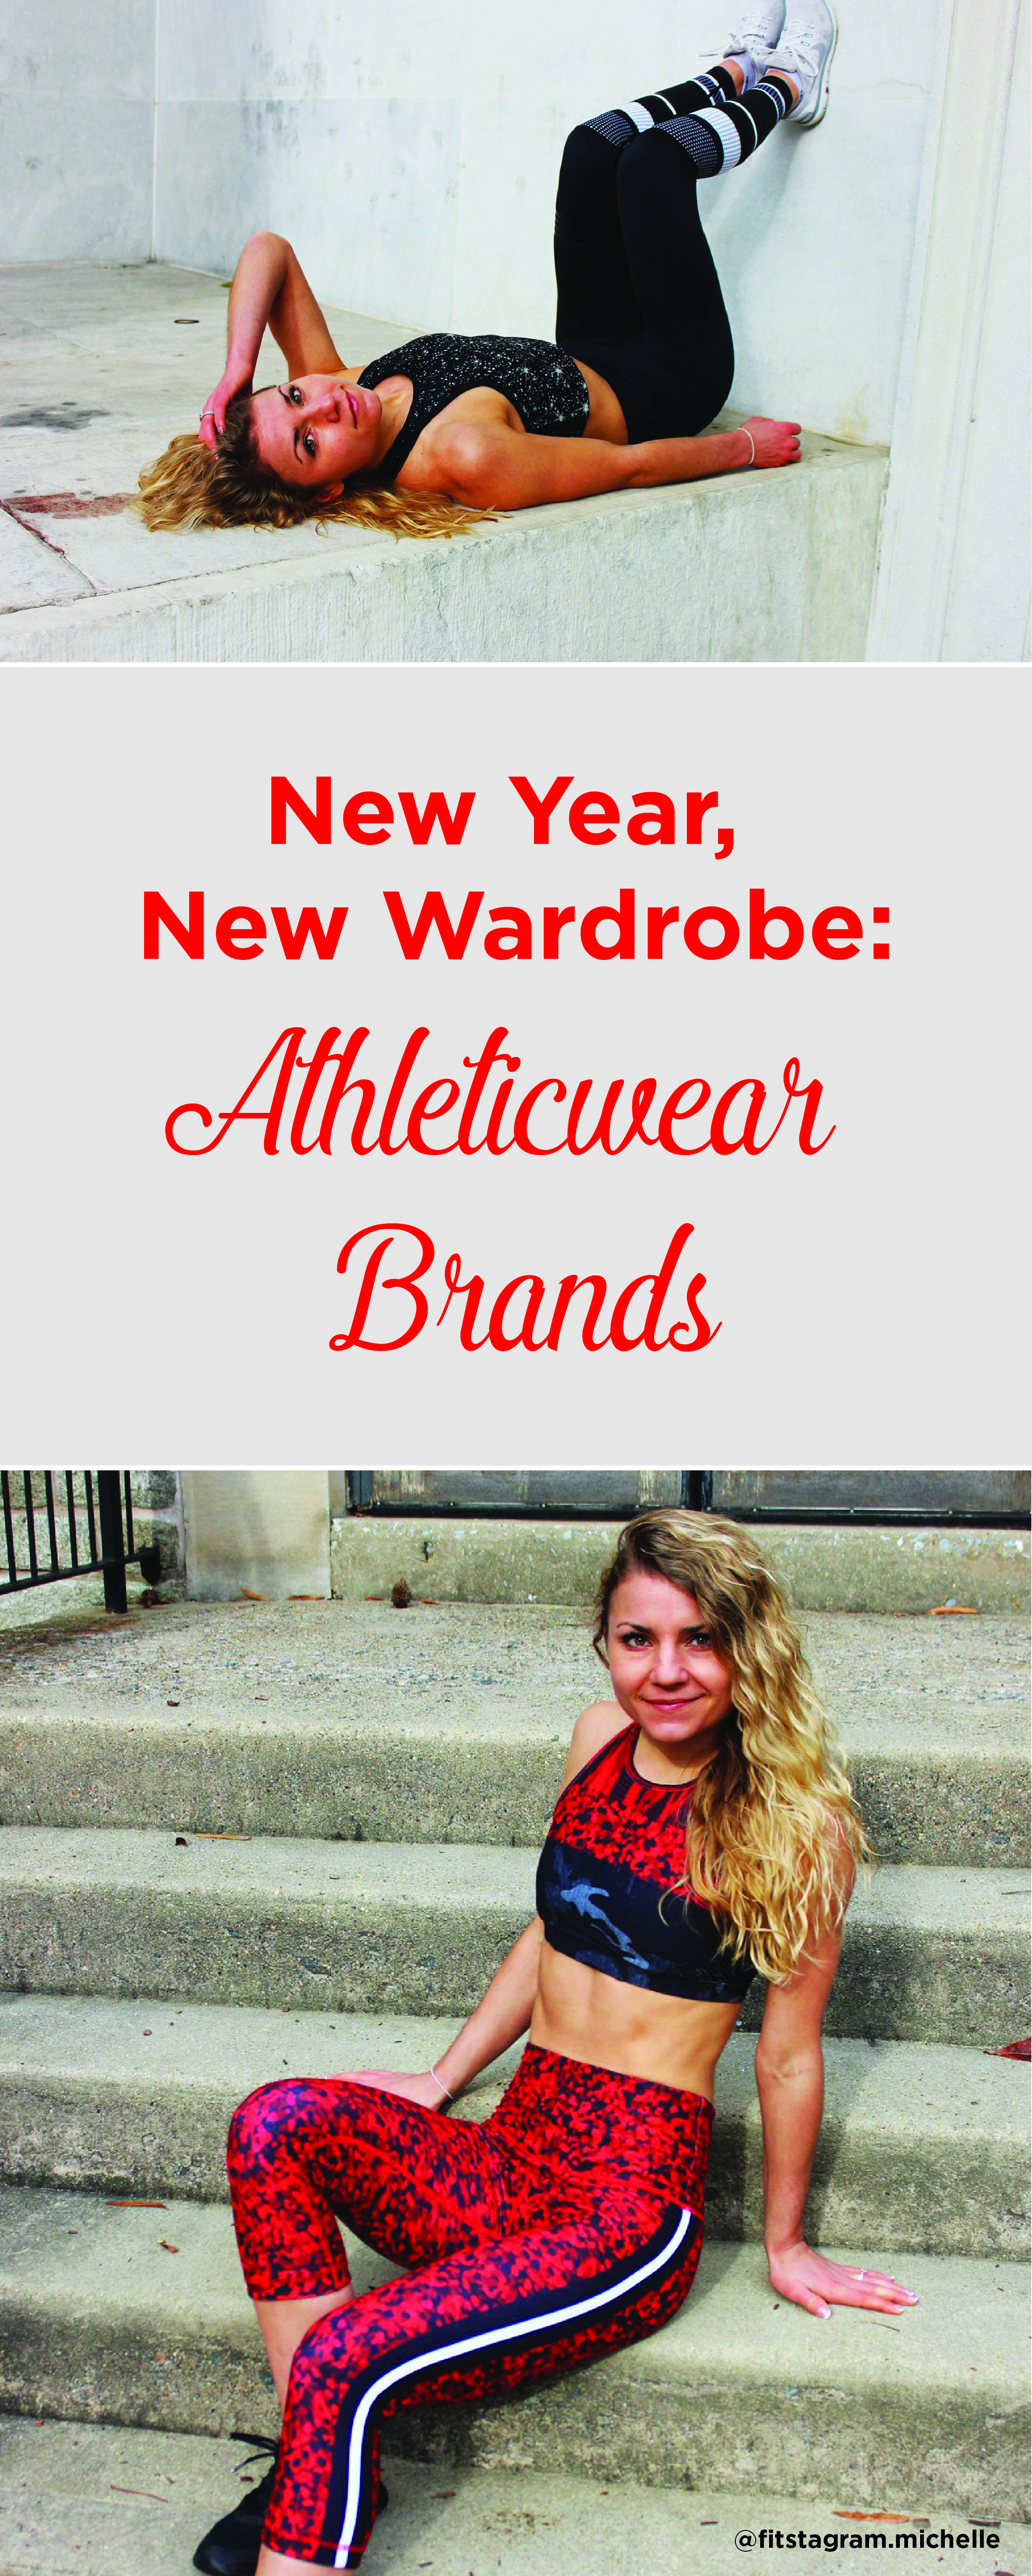 New Year, New Wardrobe. Assessing my favorite activewear brands! New workout clothes is a great motivation to get to the gym!